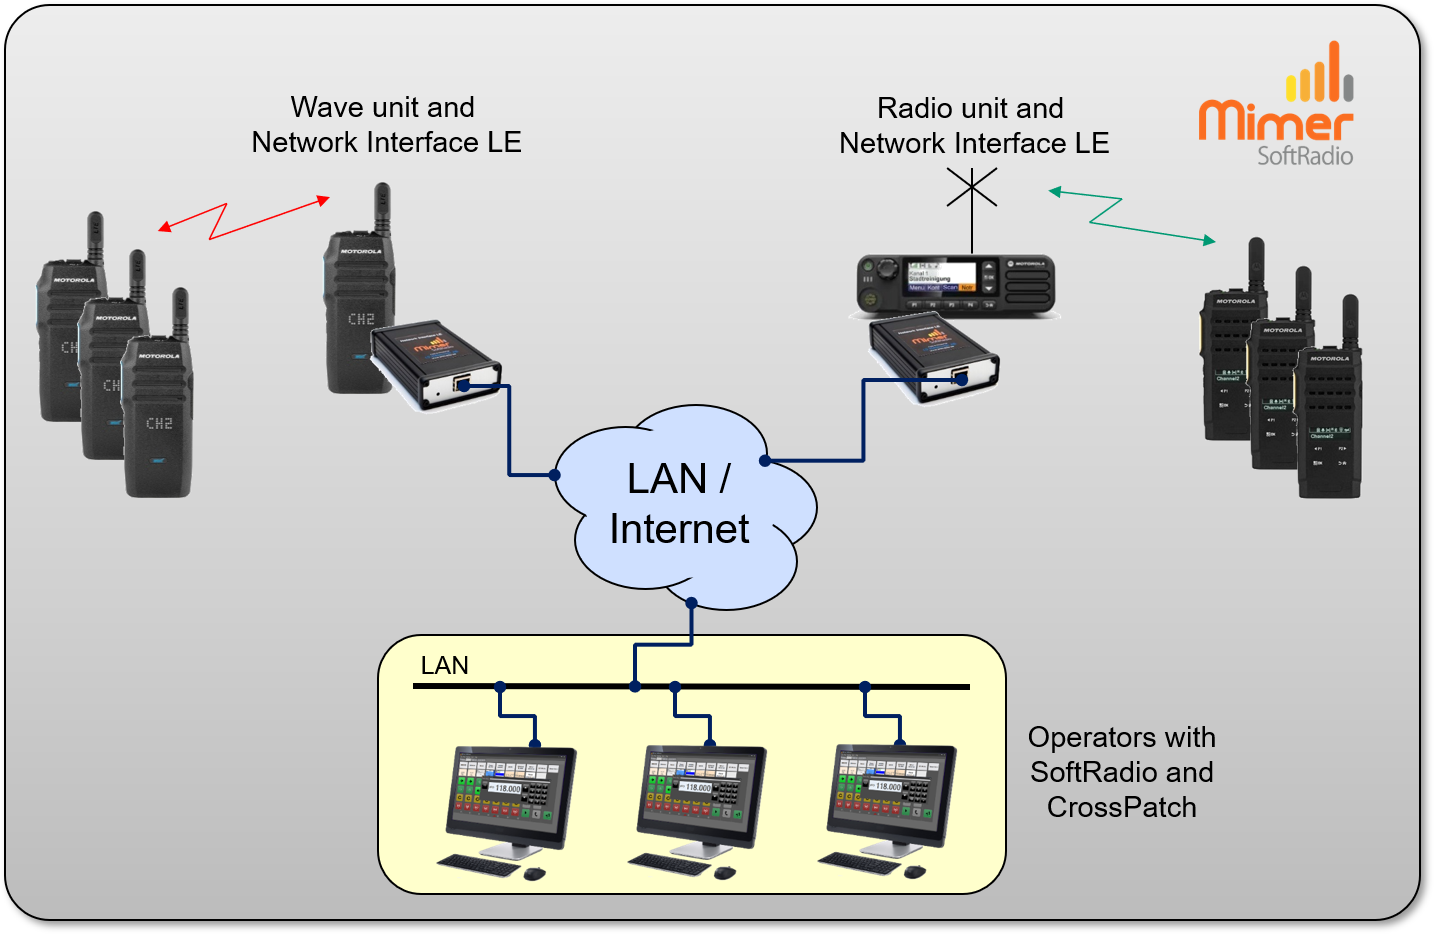 Cross patching through SoftRAdio between Wave and DMR